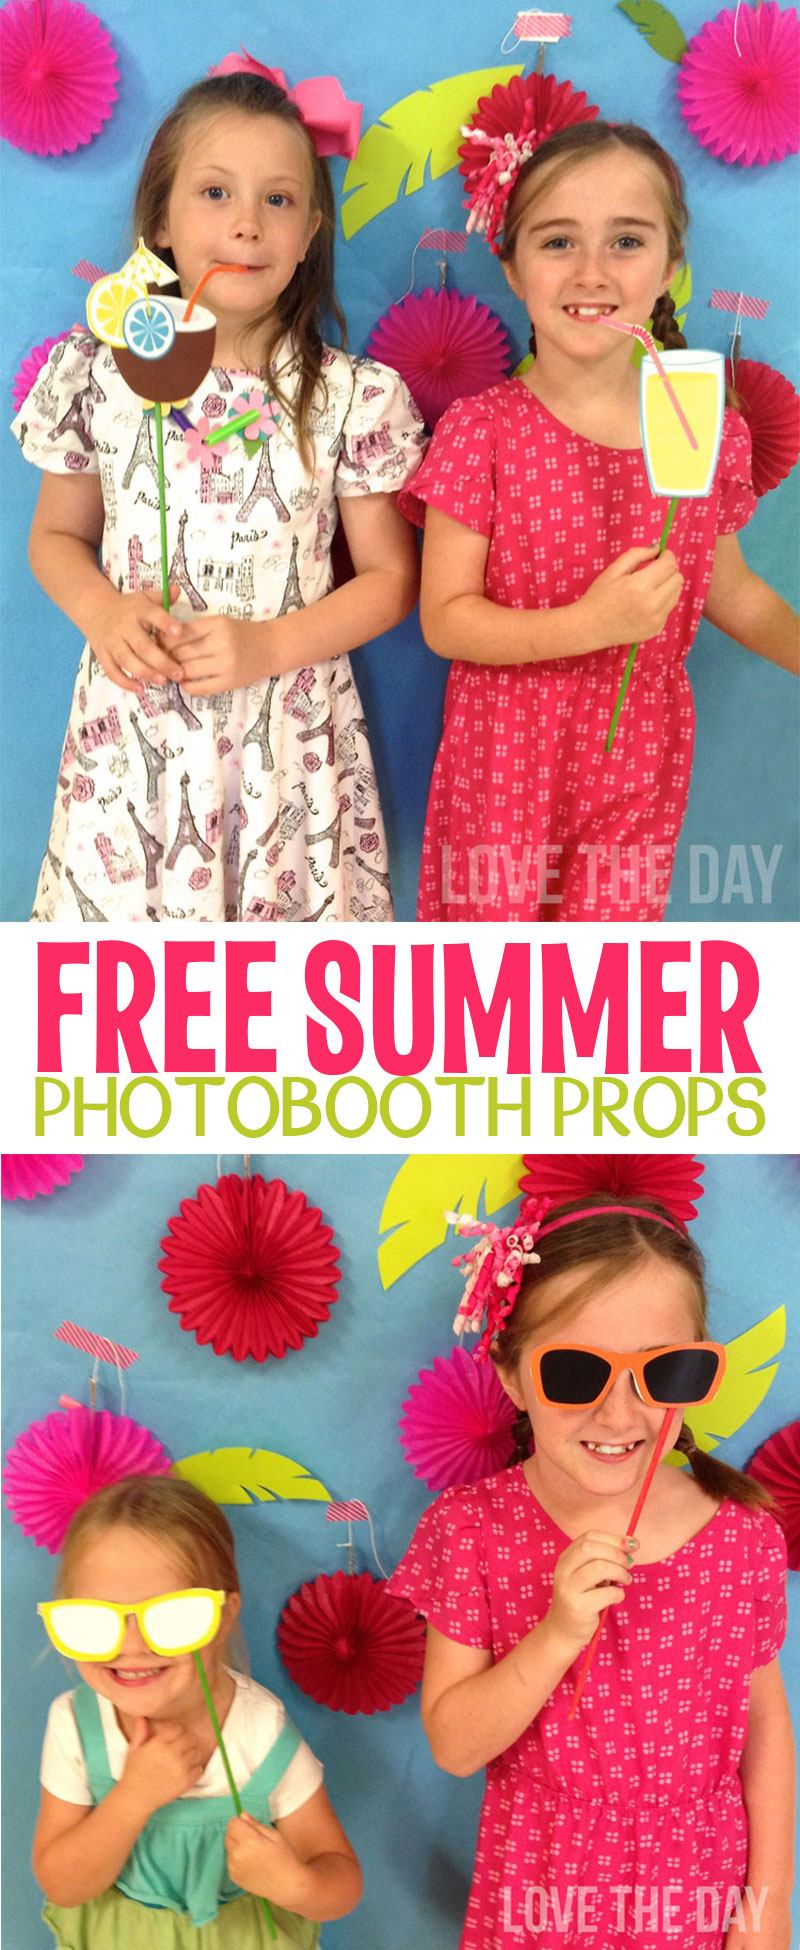 FREE Summer Photobooth Props by Lindi Haws of Love The Day